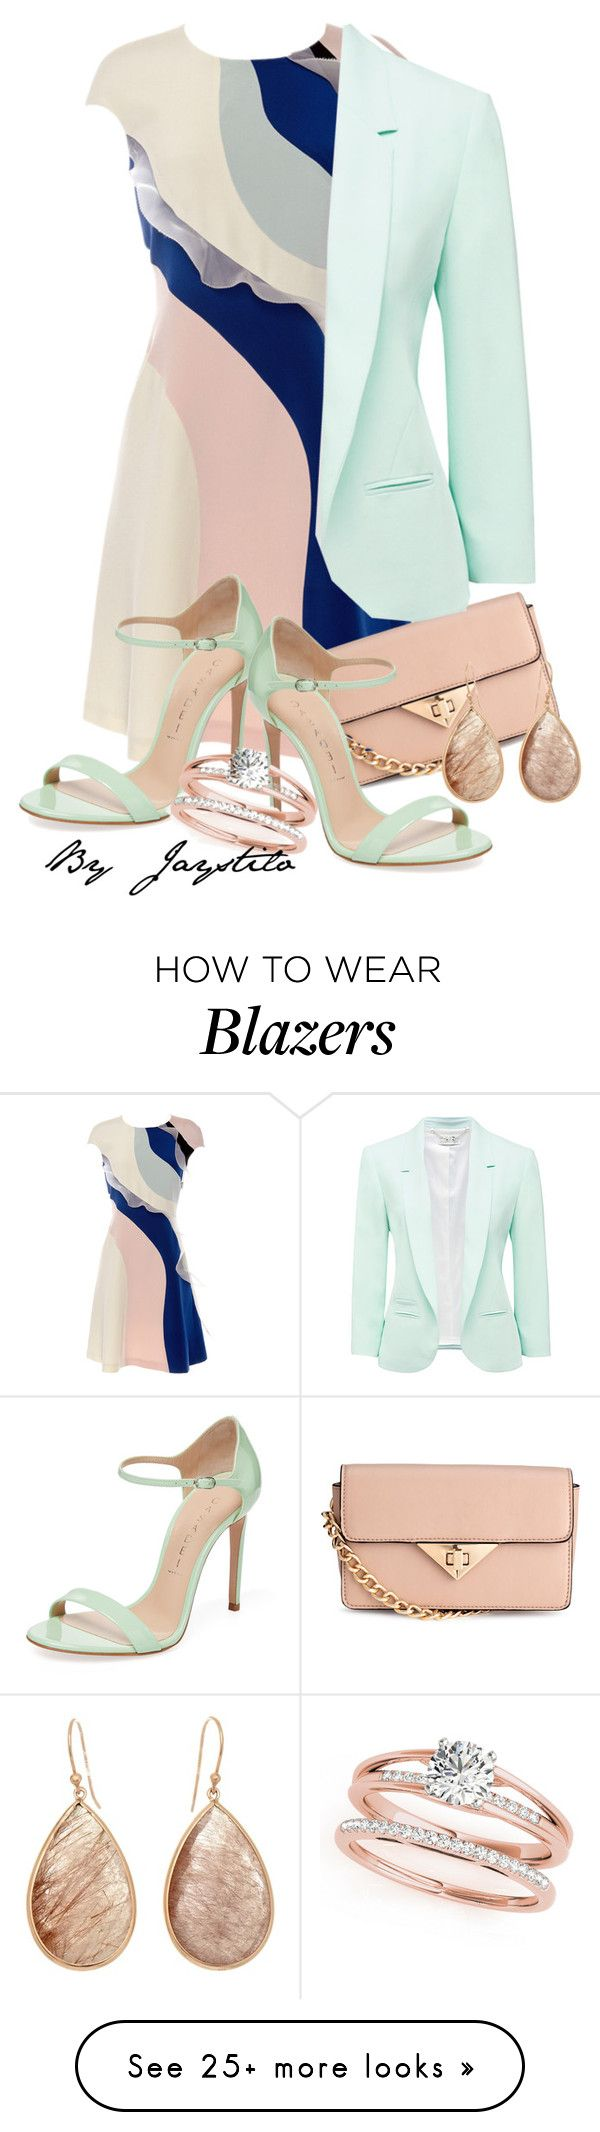 """Minty wedding"" by jaystilo on Polyvore featuring HUISHAN ZHANG, H&M, Forever New and Casadei"